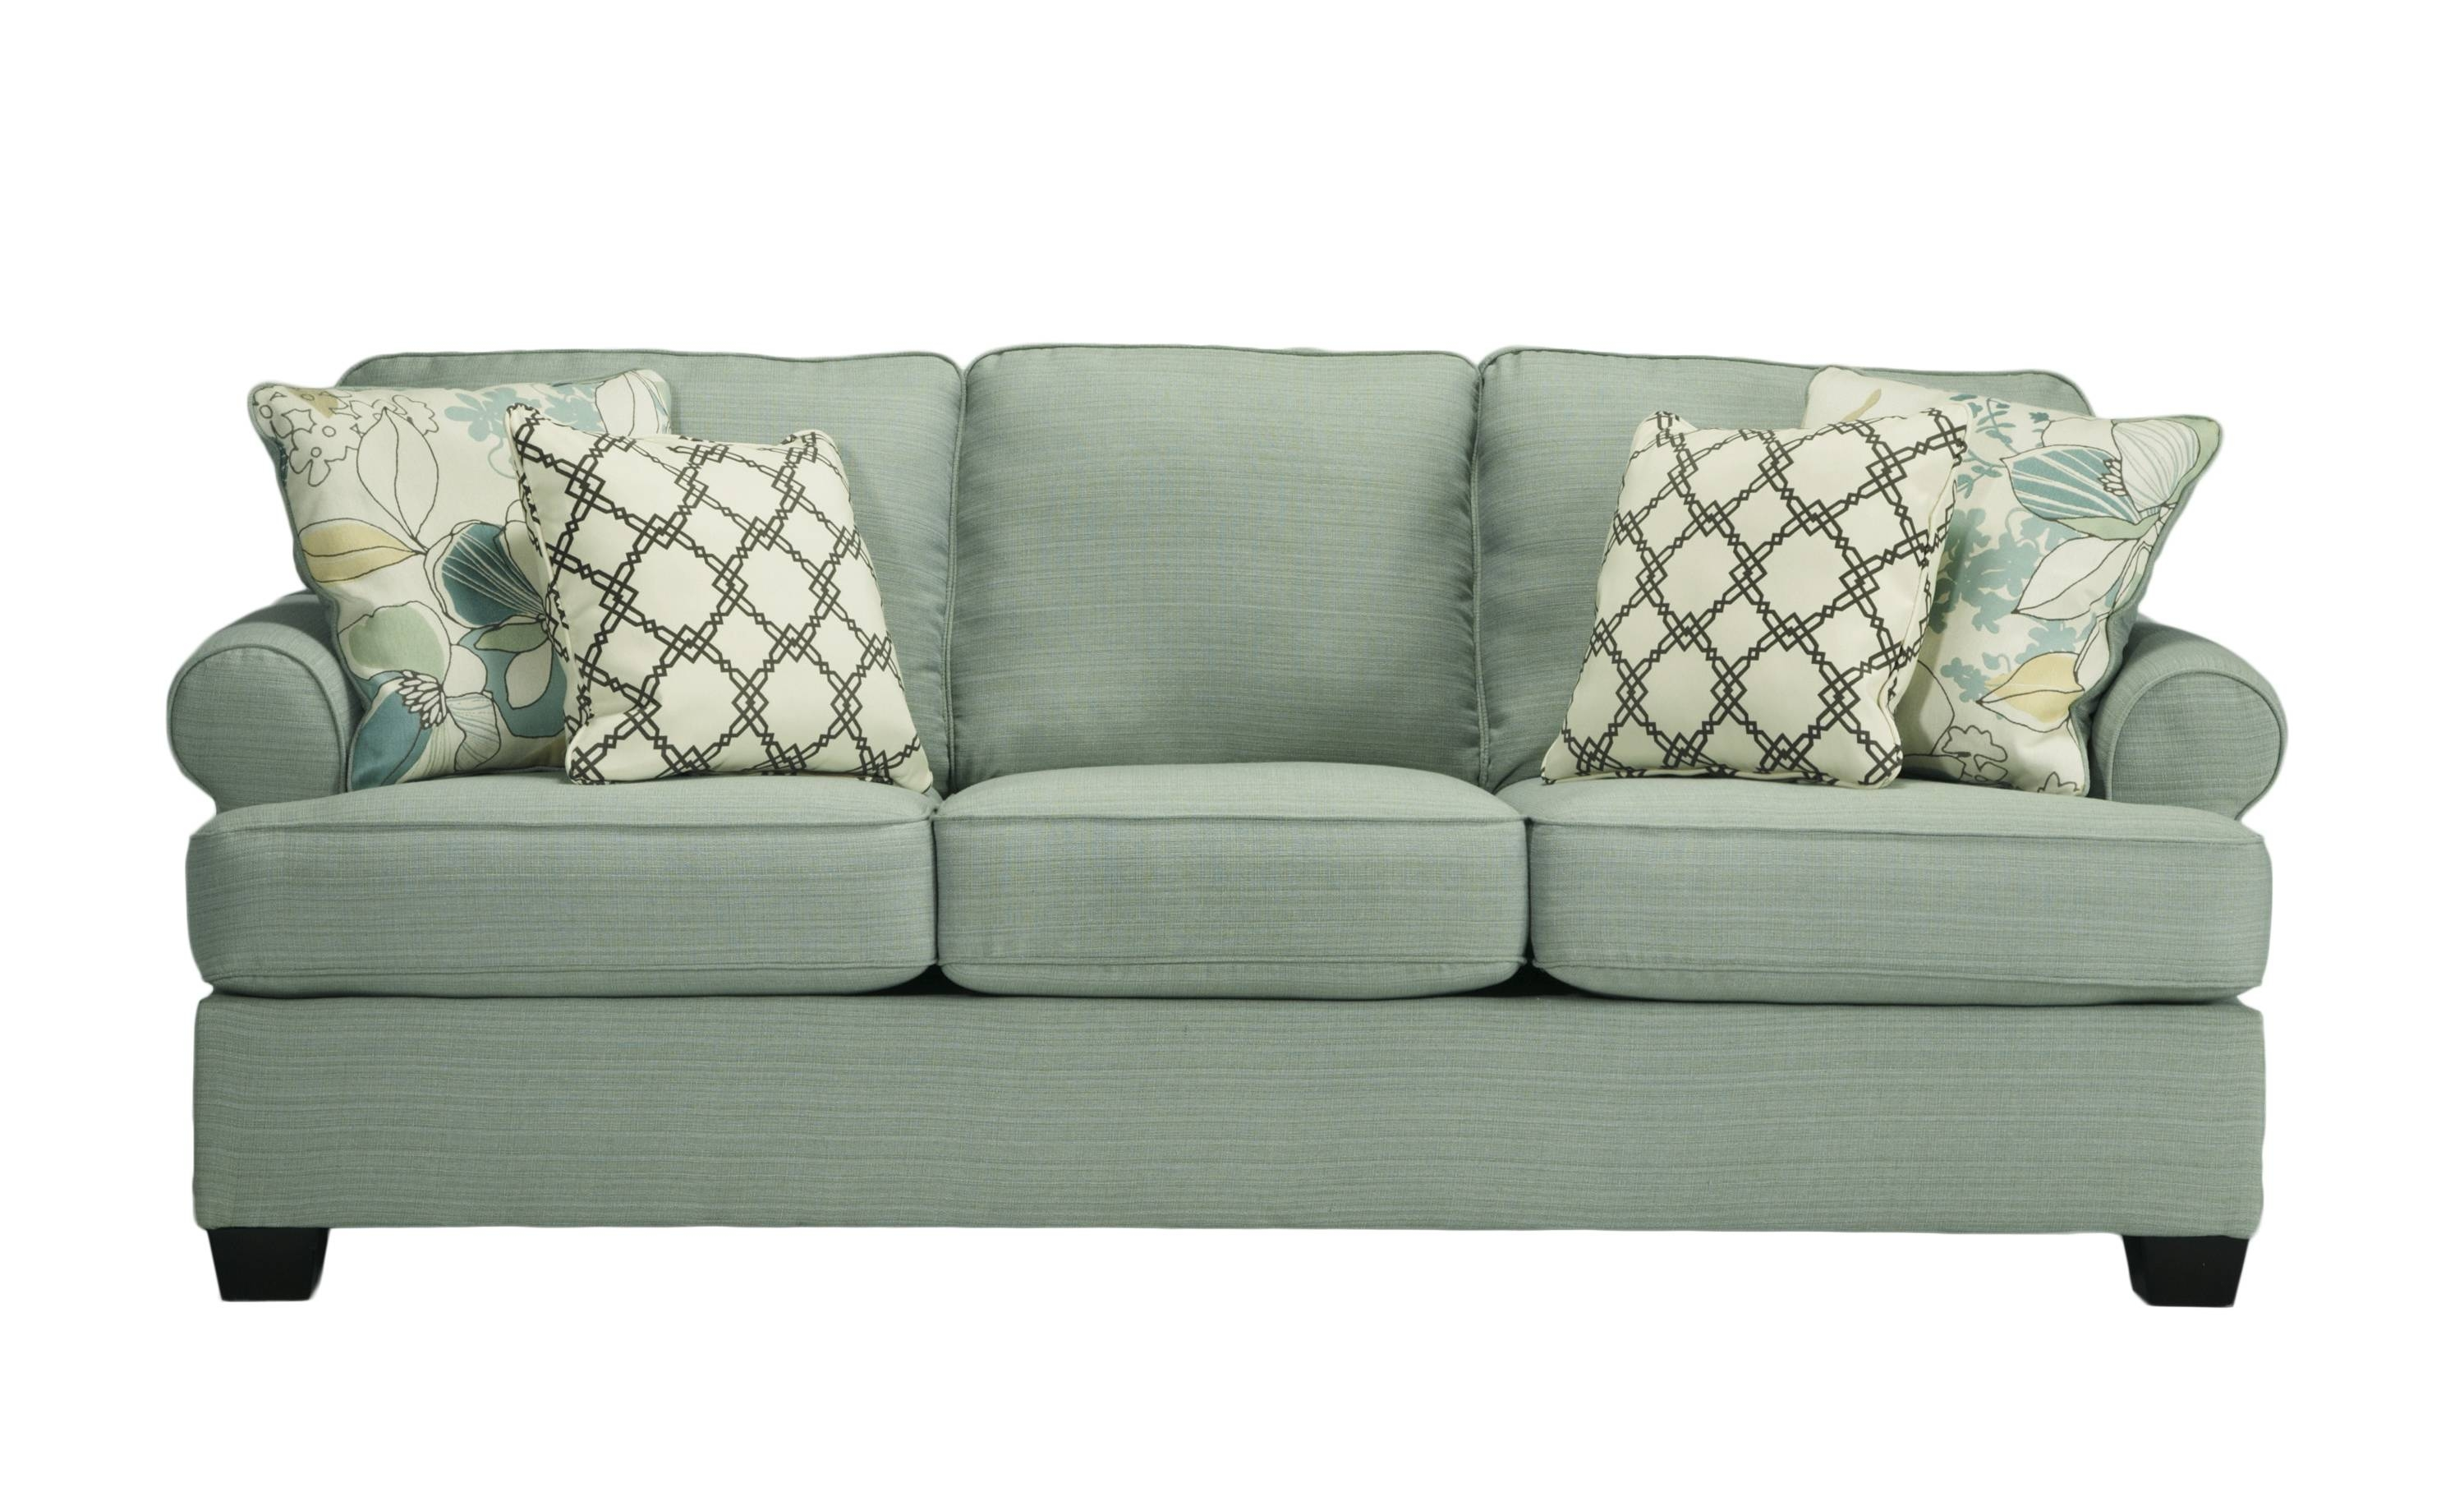 Daystar Contemporary Seafoam Fabric Sofa | Living Rooms | The pertaining to Seafoam Green Couches (Image 4 of 15)